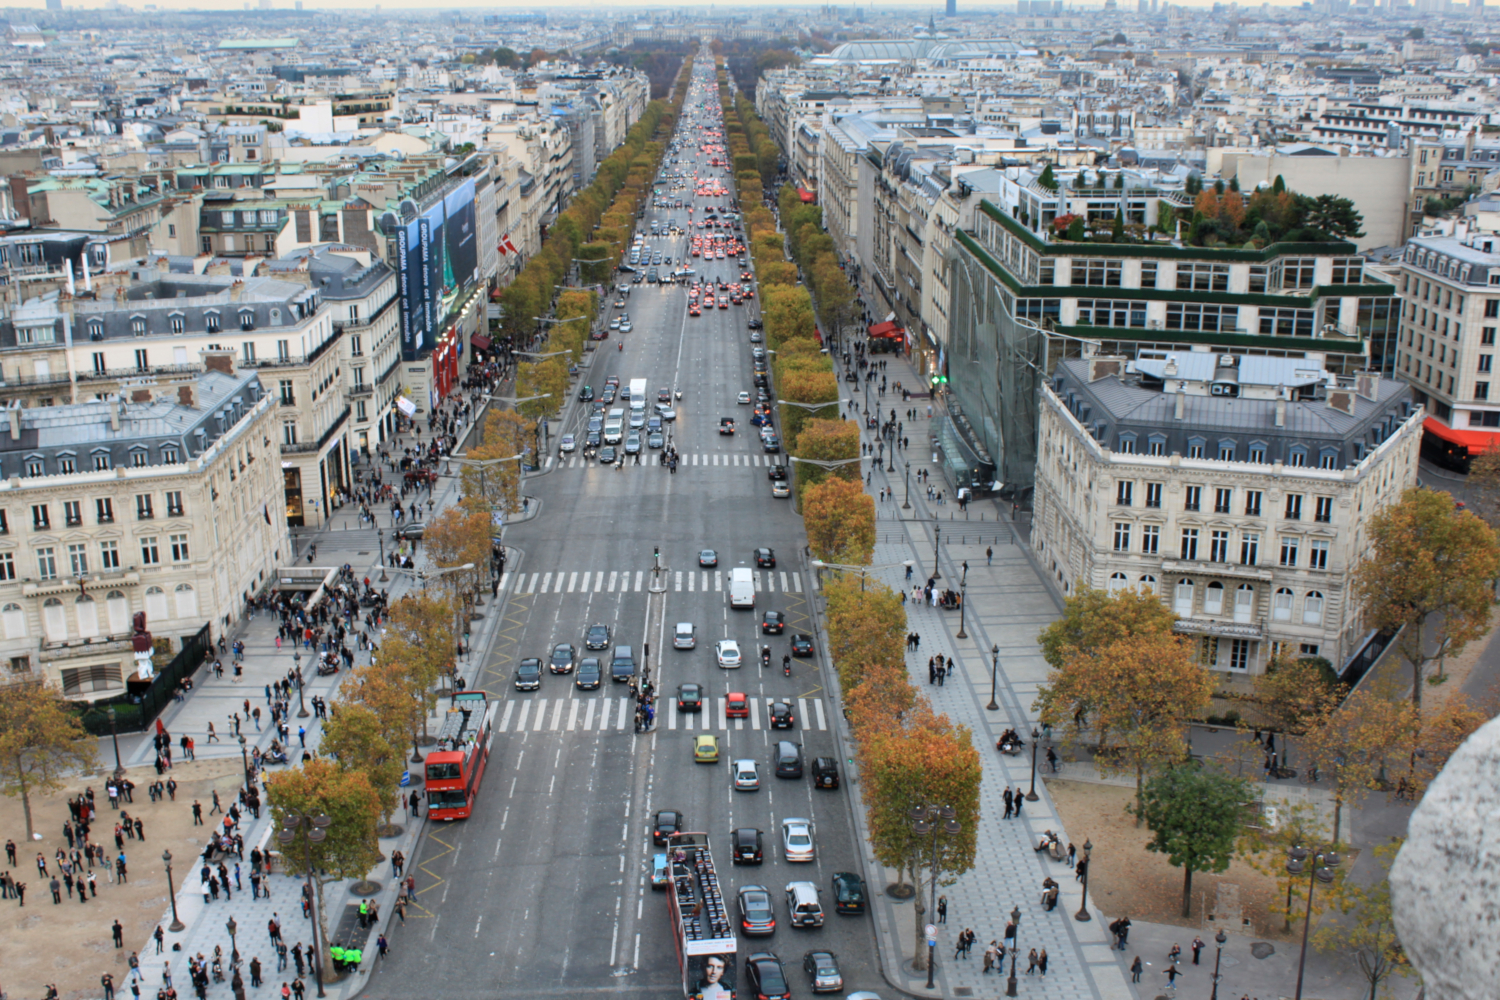 Road traffic in The Champs-Élysées from the top of the Arc de Triomphe. (credits: Natasha de Vere & Col Ford / Flickr Creative Commons Attribution 2.0 Generic (CC BY 2.0))